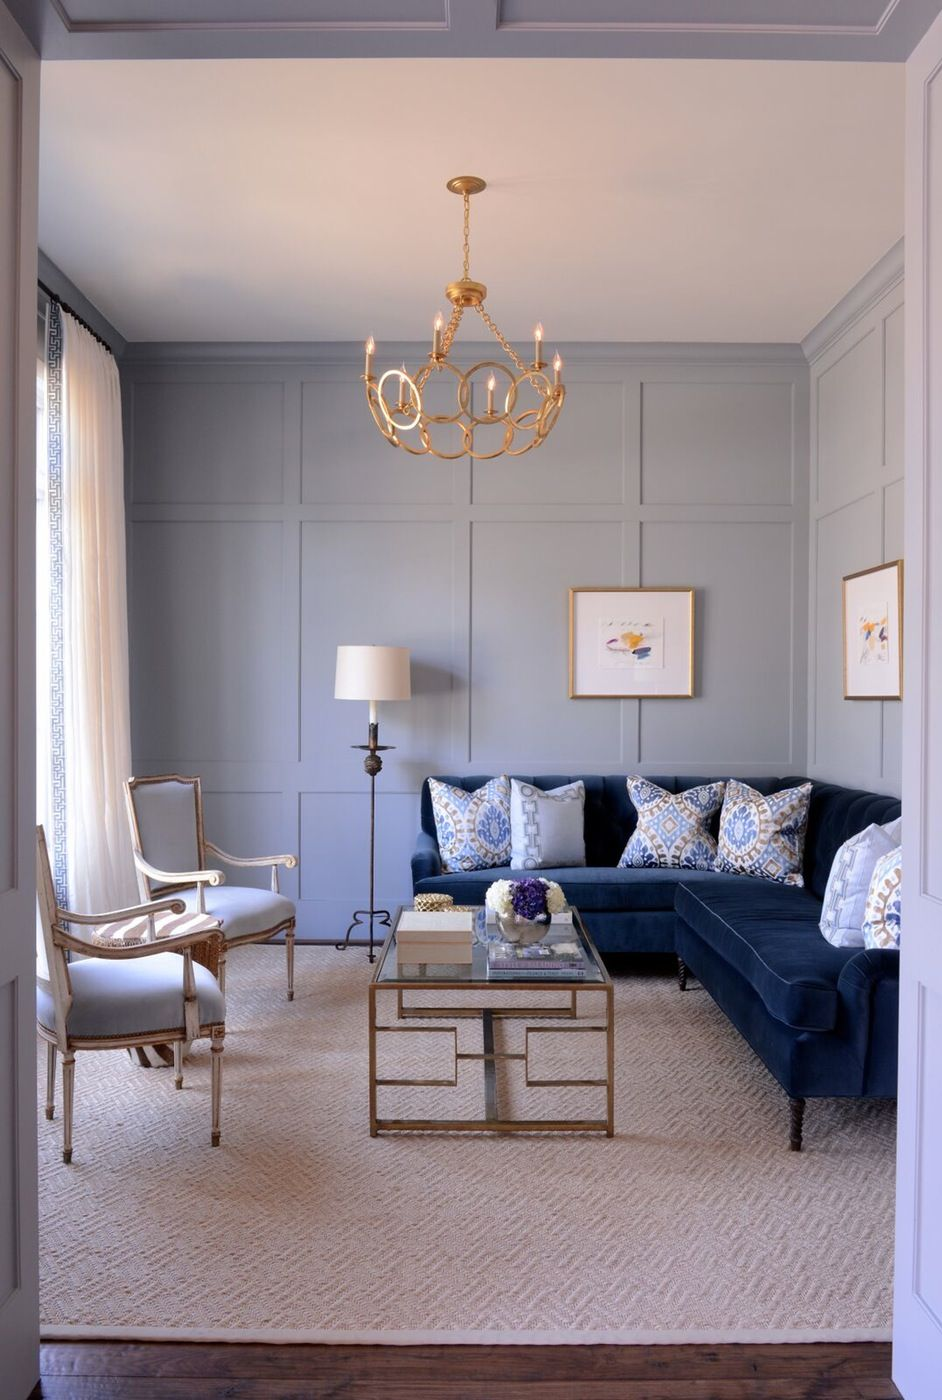 Pin by Dering Hall on Living Rooms | Blue couch living ...